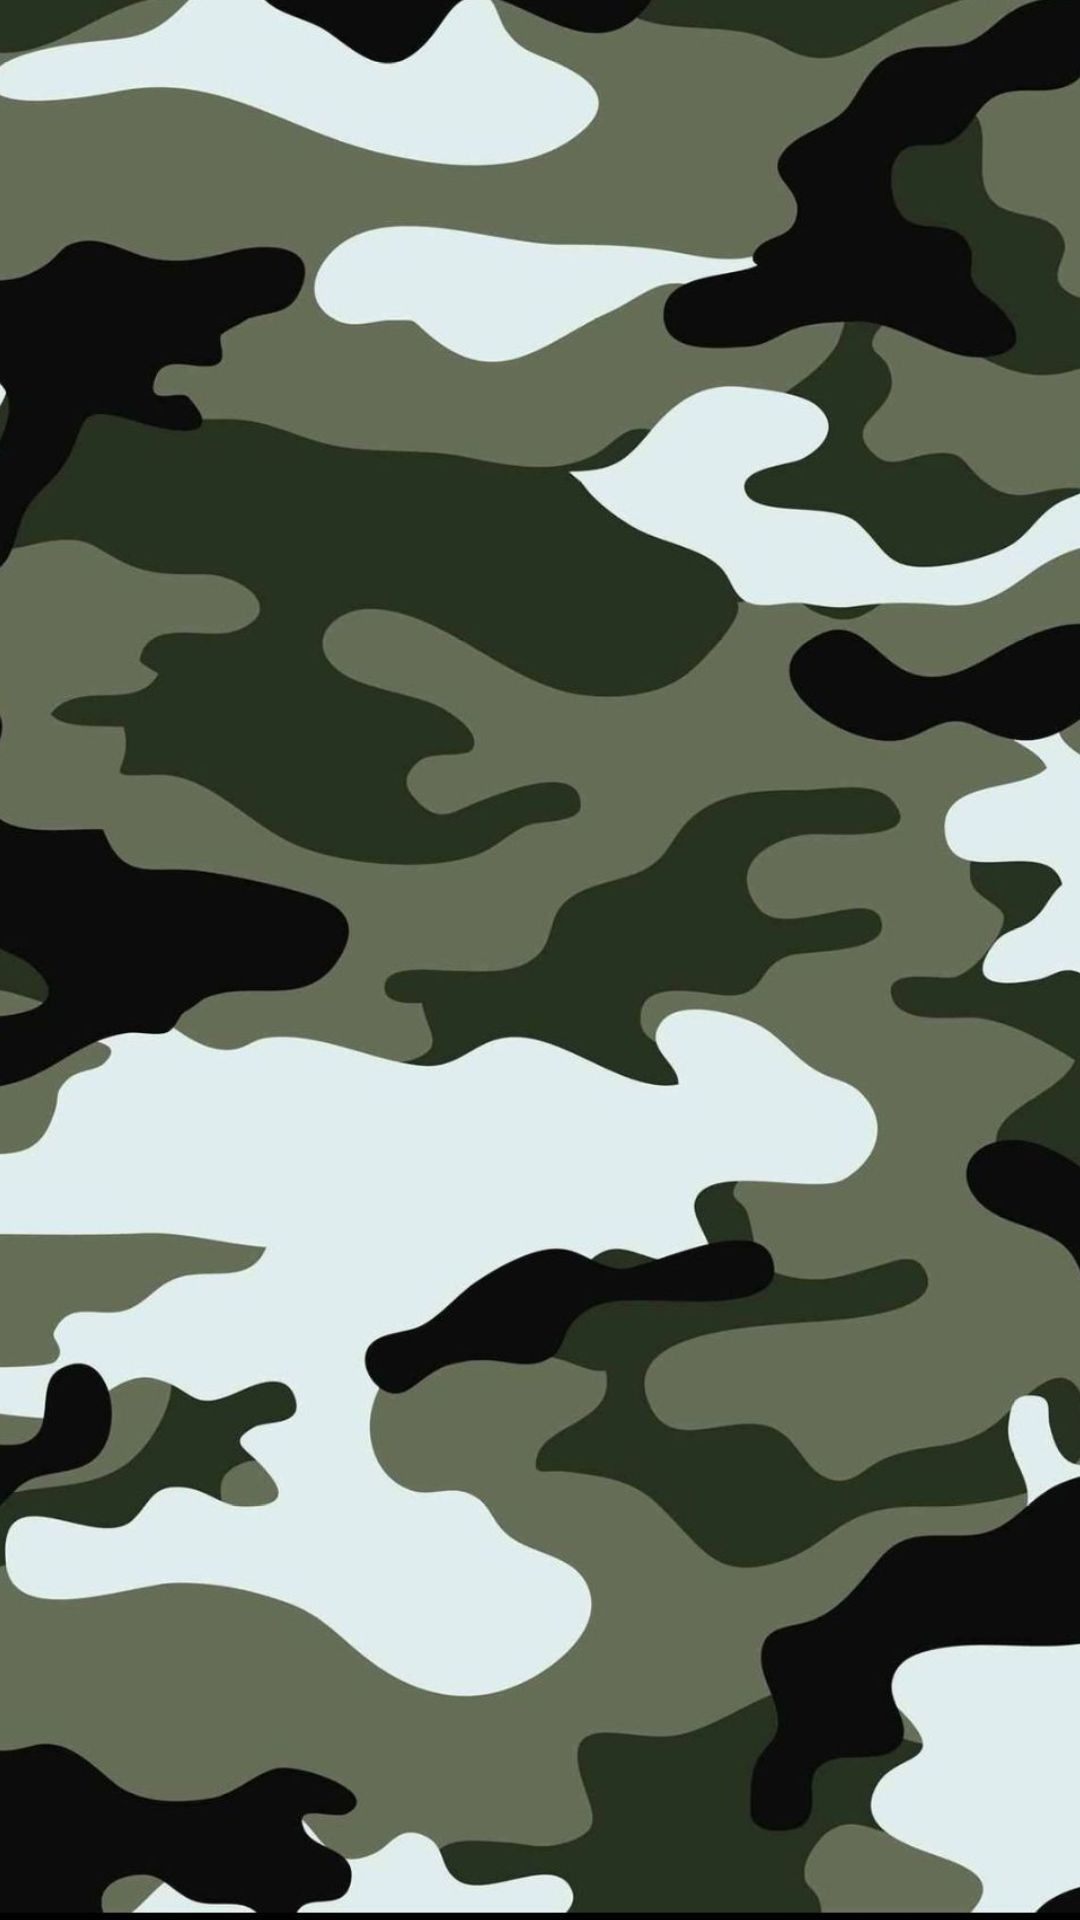 Pin By Kirk Robinson On Camo Camo Wallpaper Camouflage